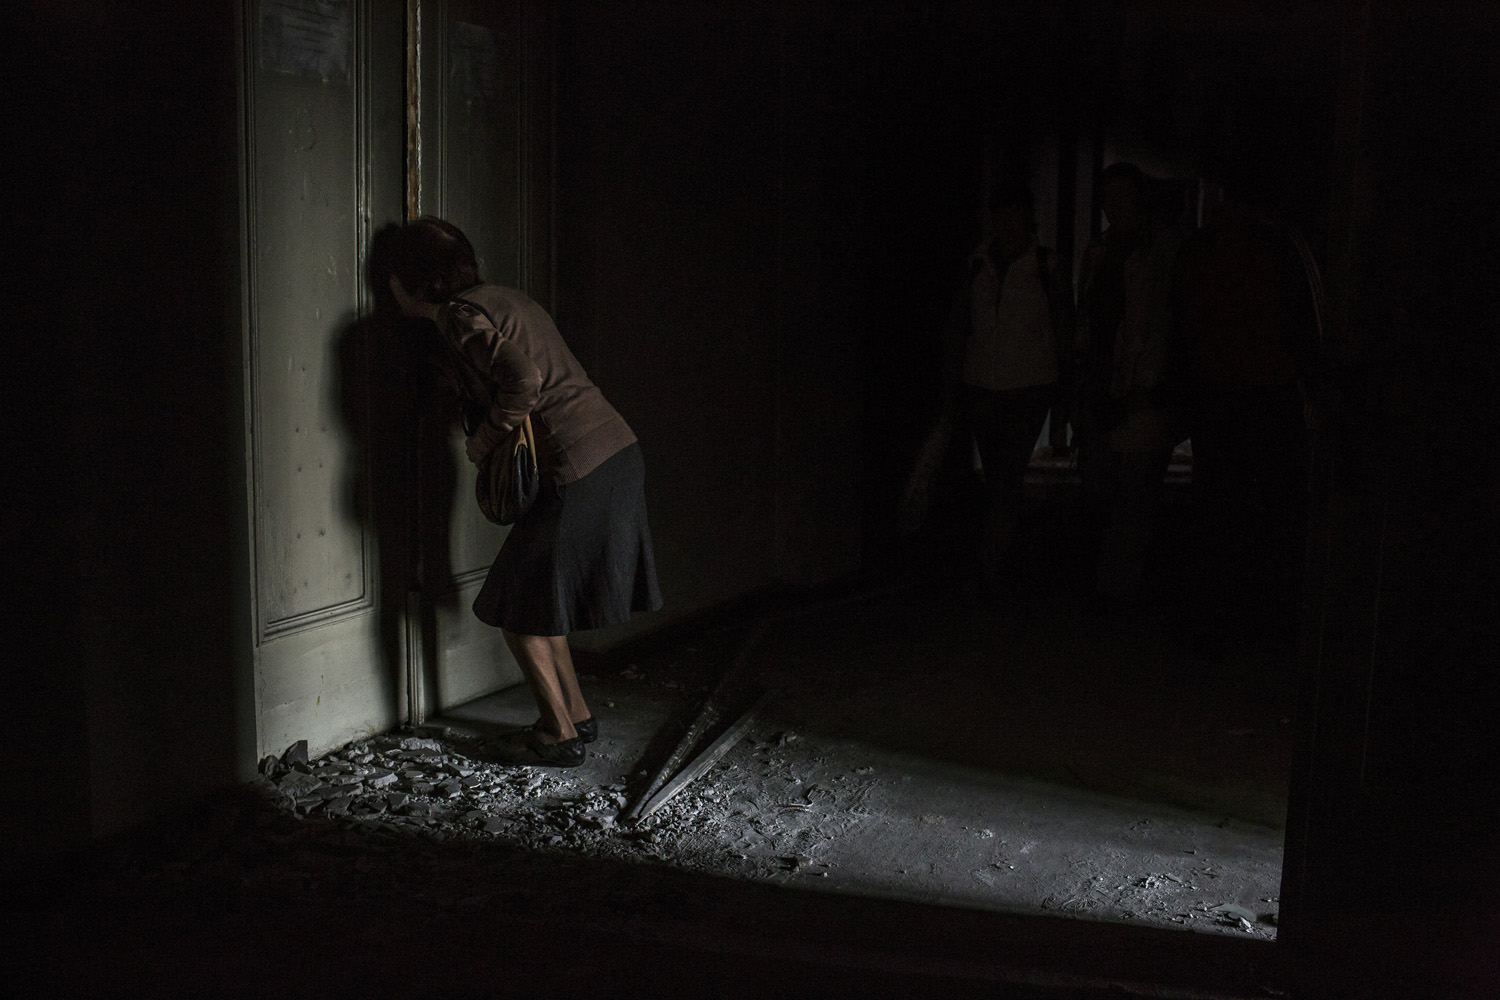 May 4, 2014. A woman tries to look through a hole in a door during a visit to the trade union building that was set on fire, contributing to 46 deaths during clashes in Odessa, Ukraine.